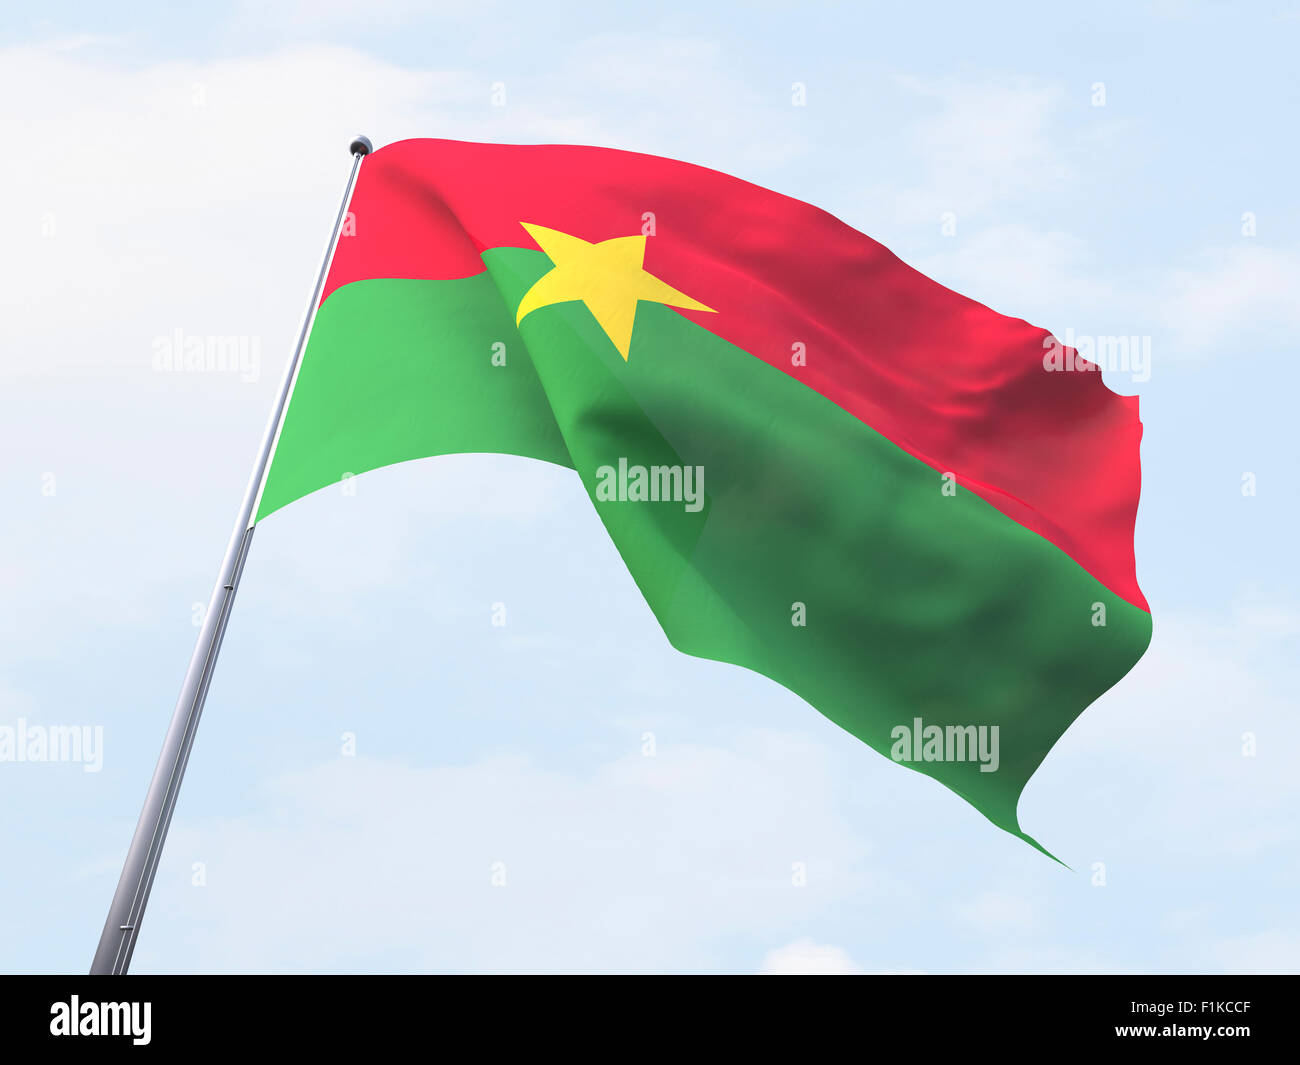 Burkina faso flag flying on clear sky. - Stock Image